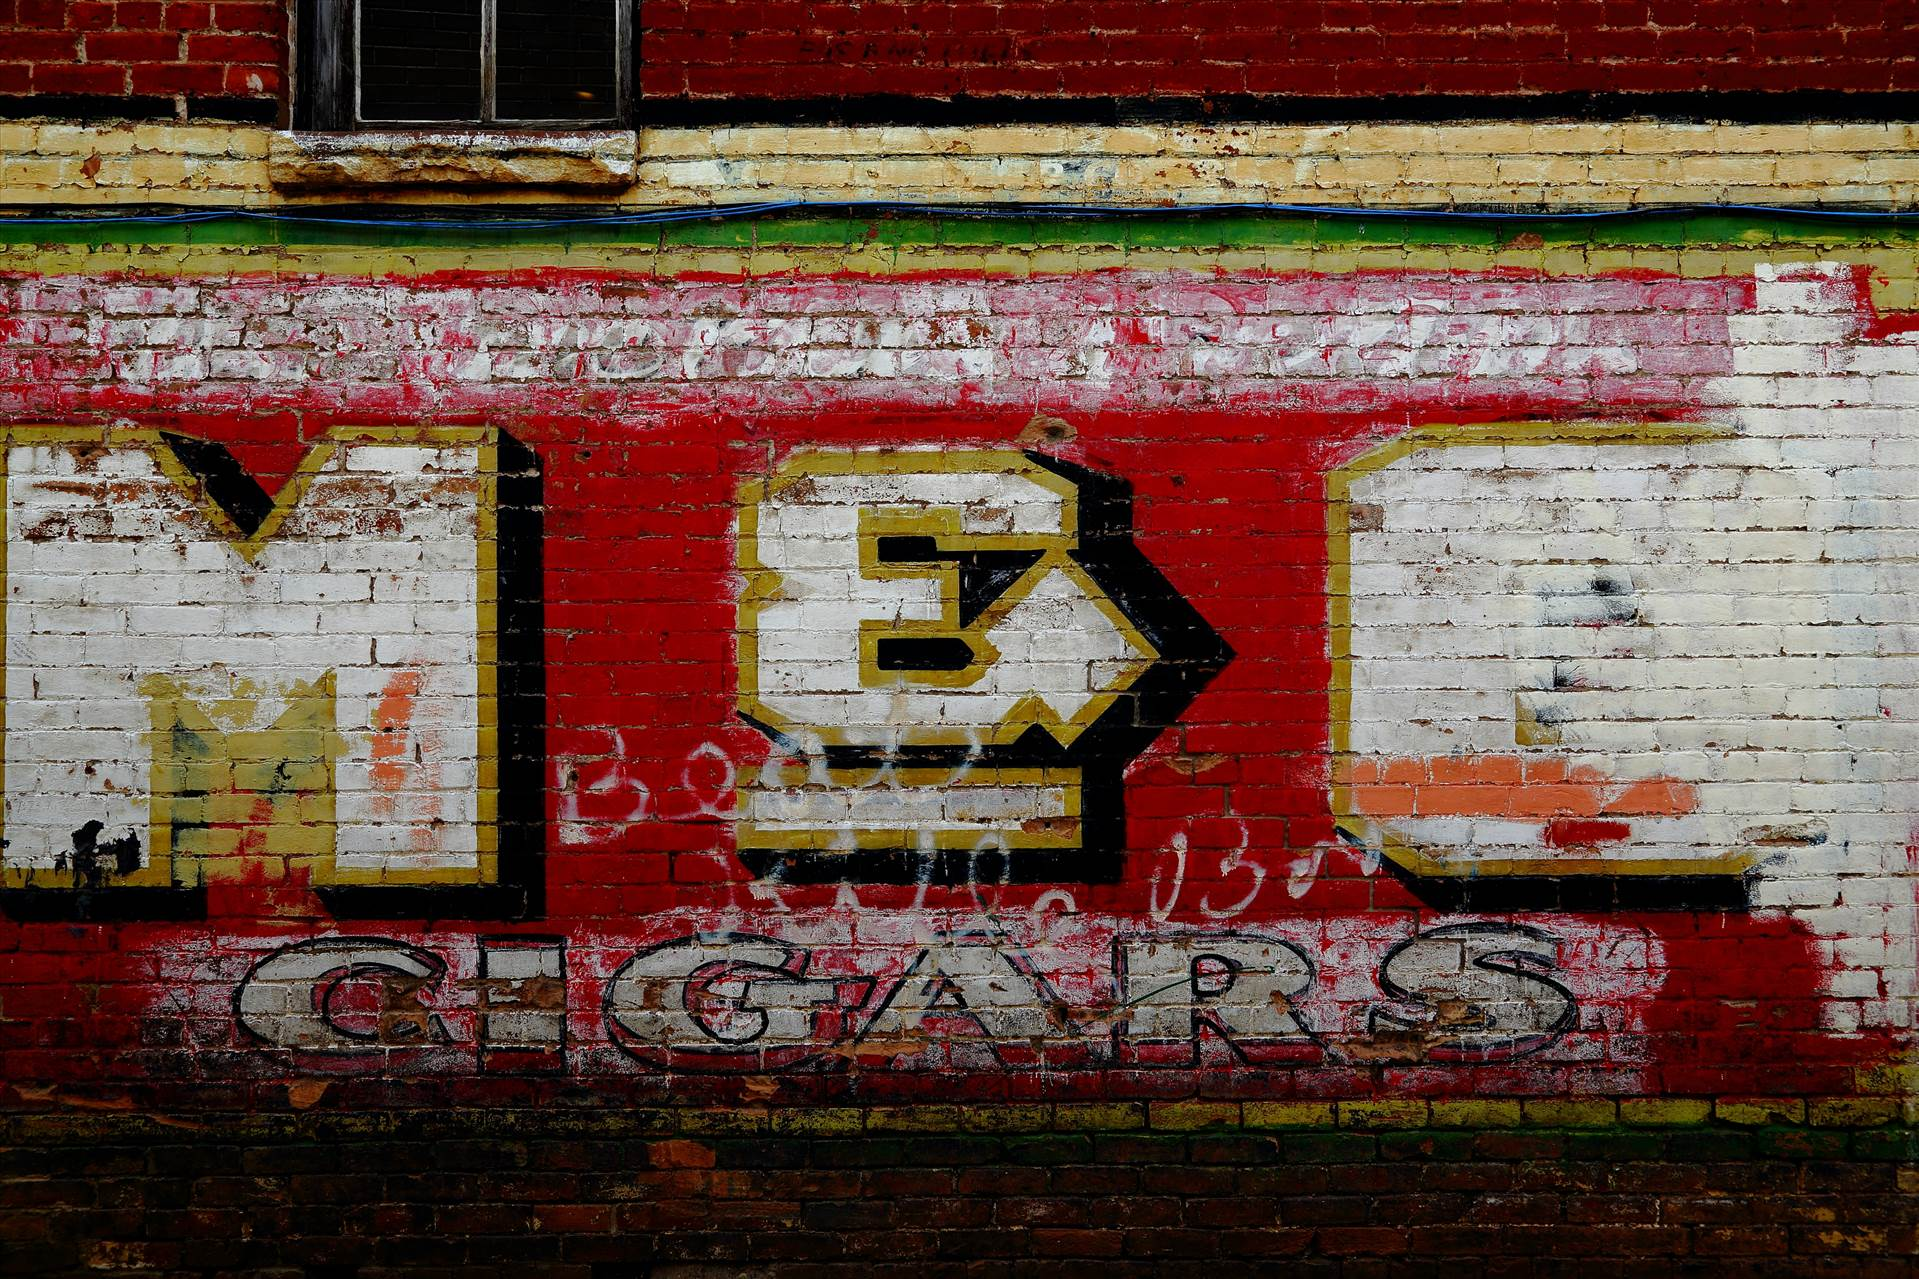 Old Signage in Alley - An alley in Glenwood Springs, CO by D Scott Smith